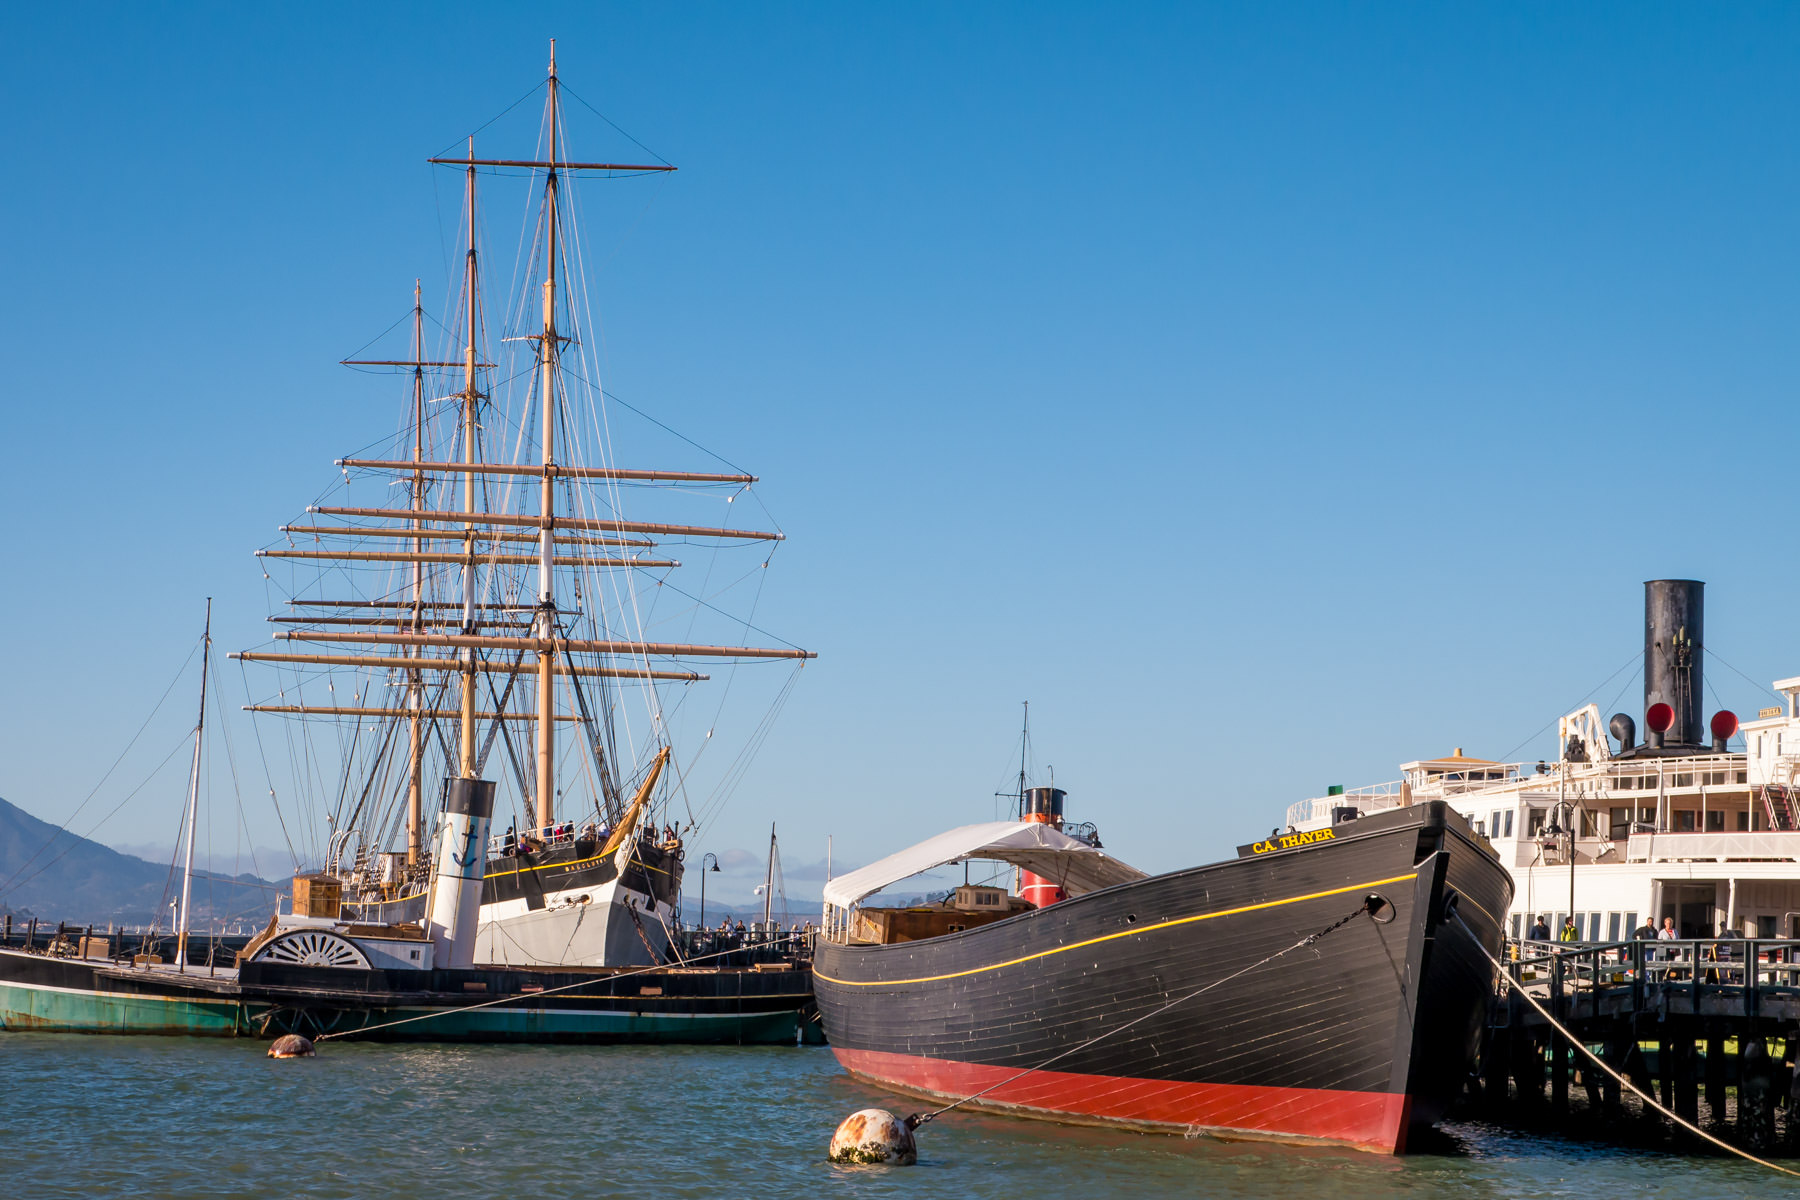 A few of the historic boats, including the 1885 lumber schooner C.A. Thayer, the 1914 paddlewheel tugboat Eppleton Hall and the 1886 square rigged Balclutha, on display at the San Francisco Maritime National Historical Park.